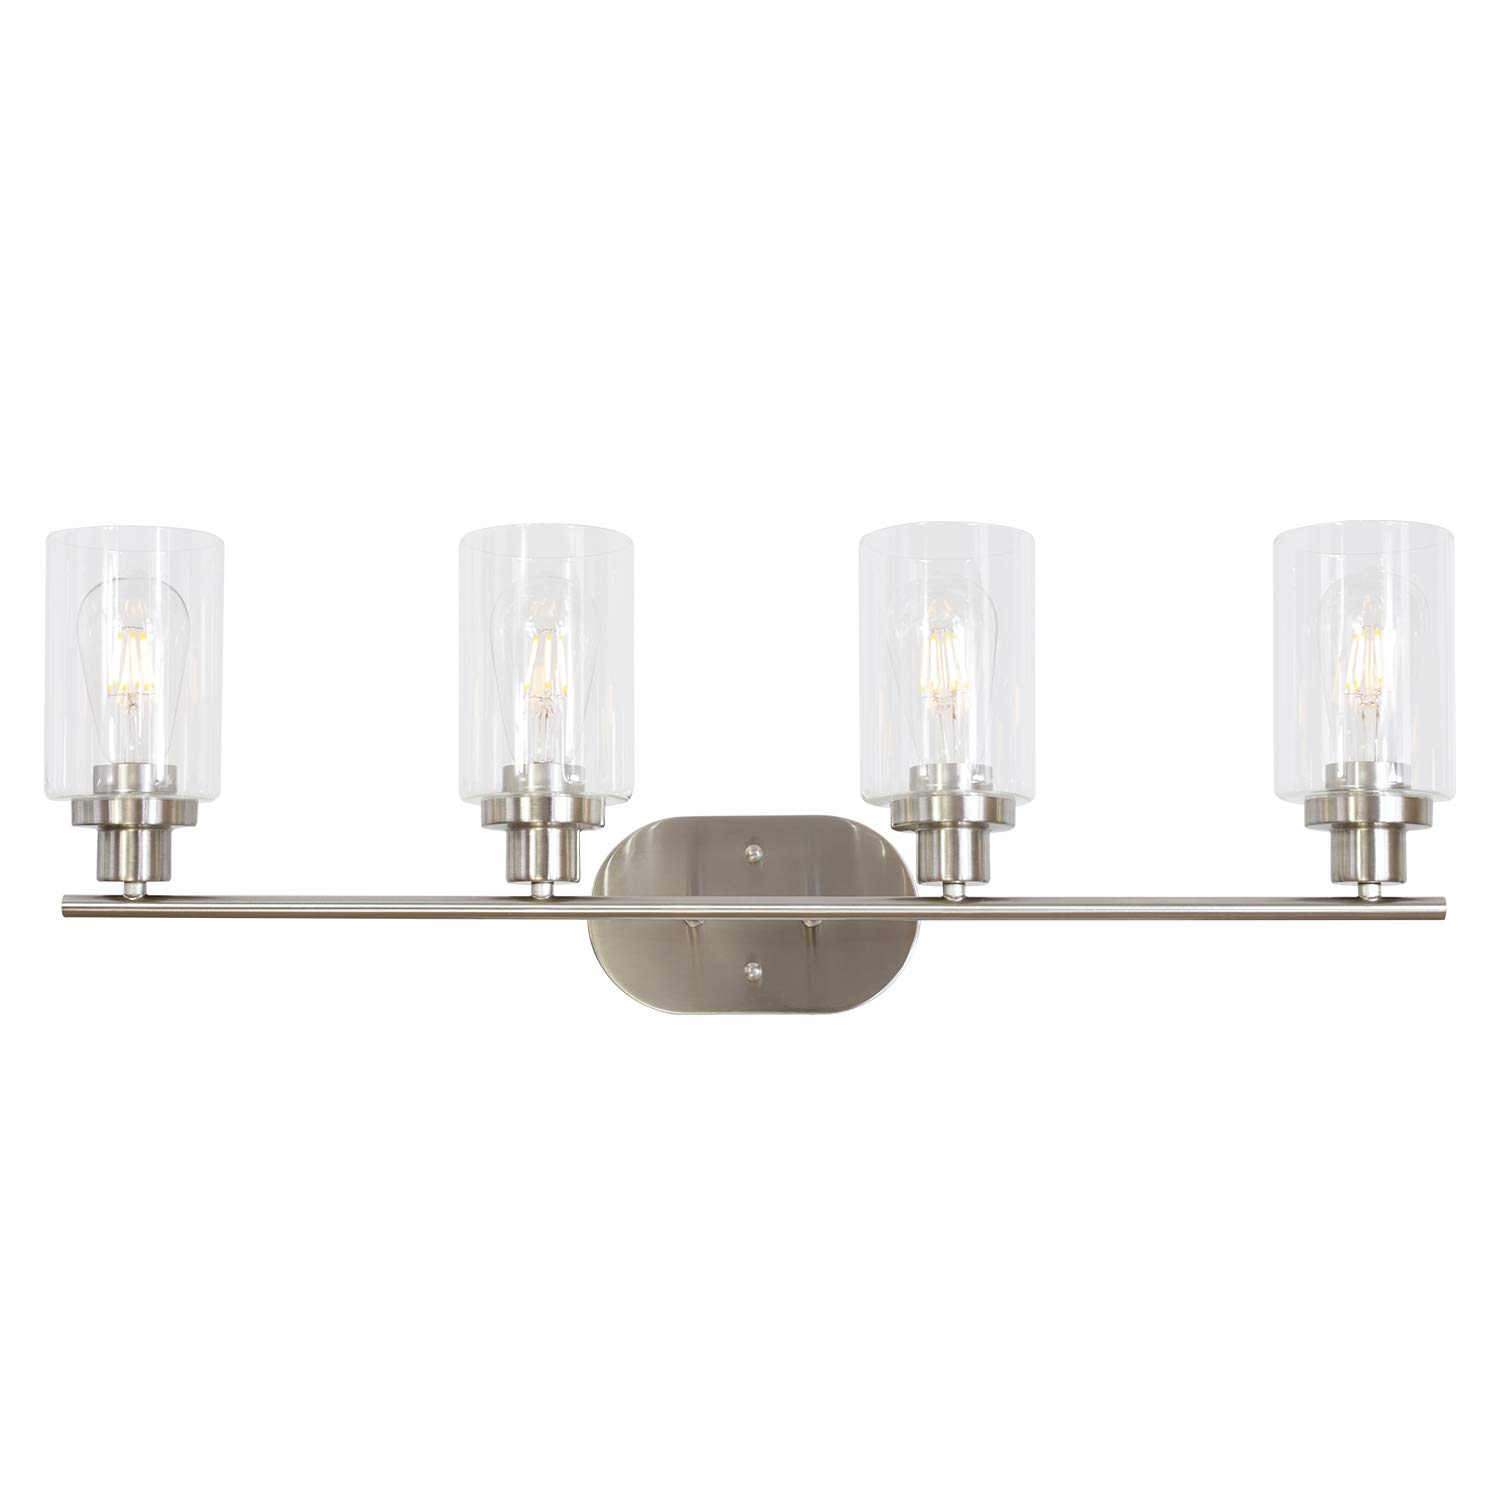 4 Light VINLUZ Wall Sconce Contemporary Stylish Bathroom Vanity Lighting Fixtures Brushed Nickel with Clear Glass